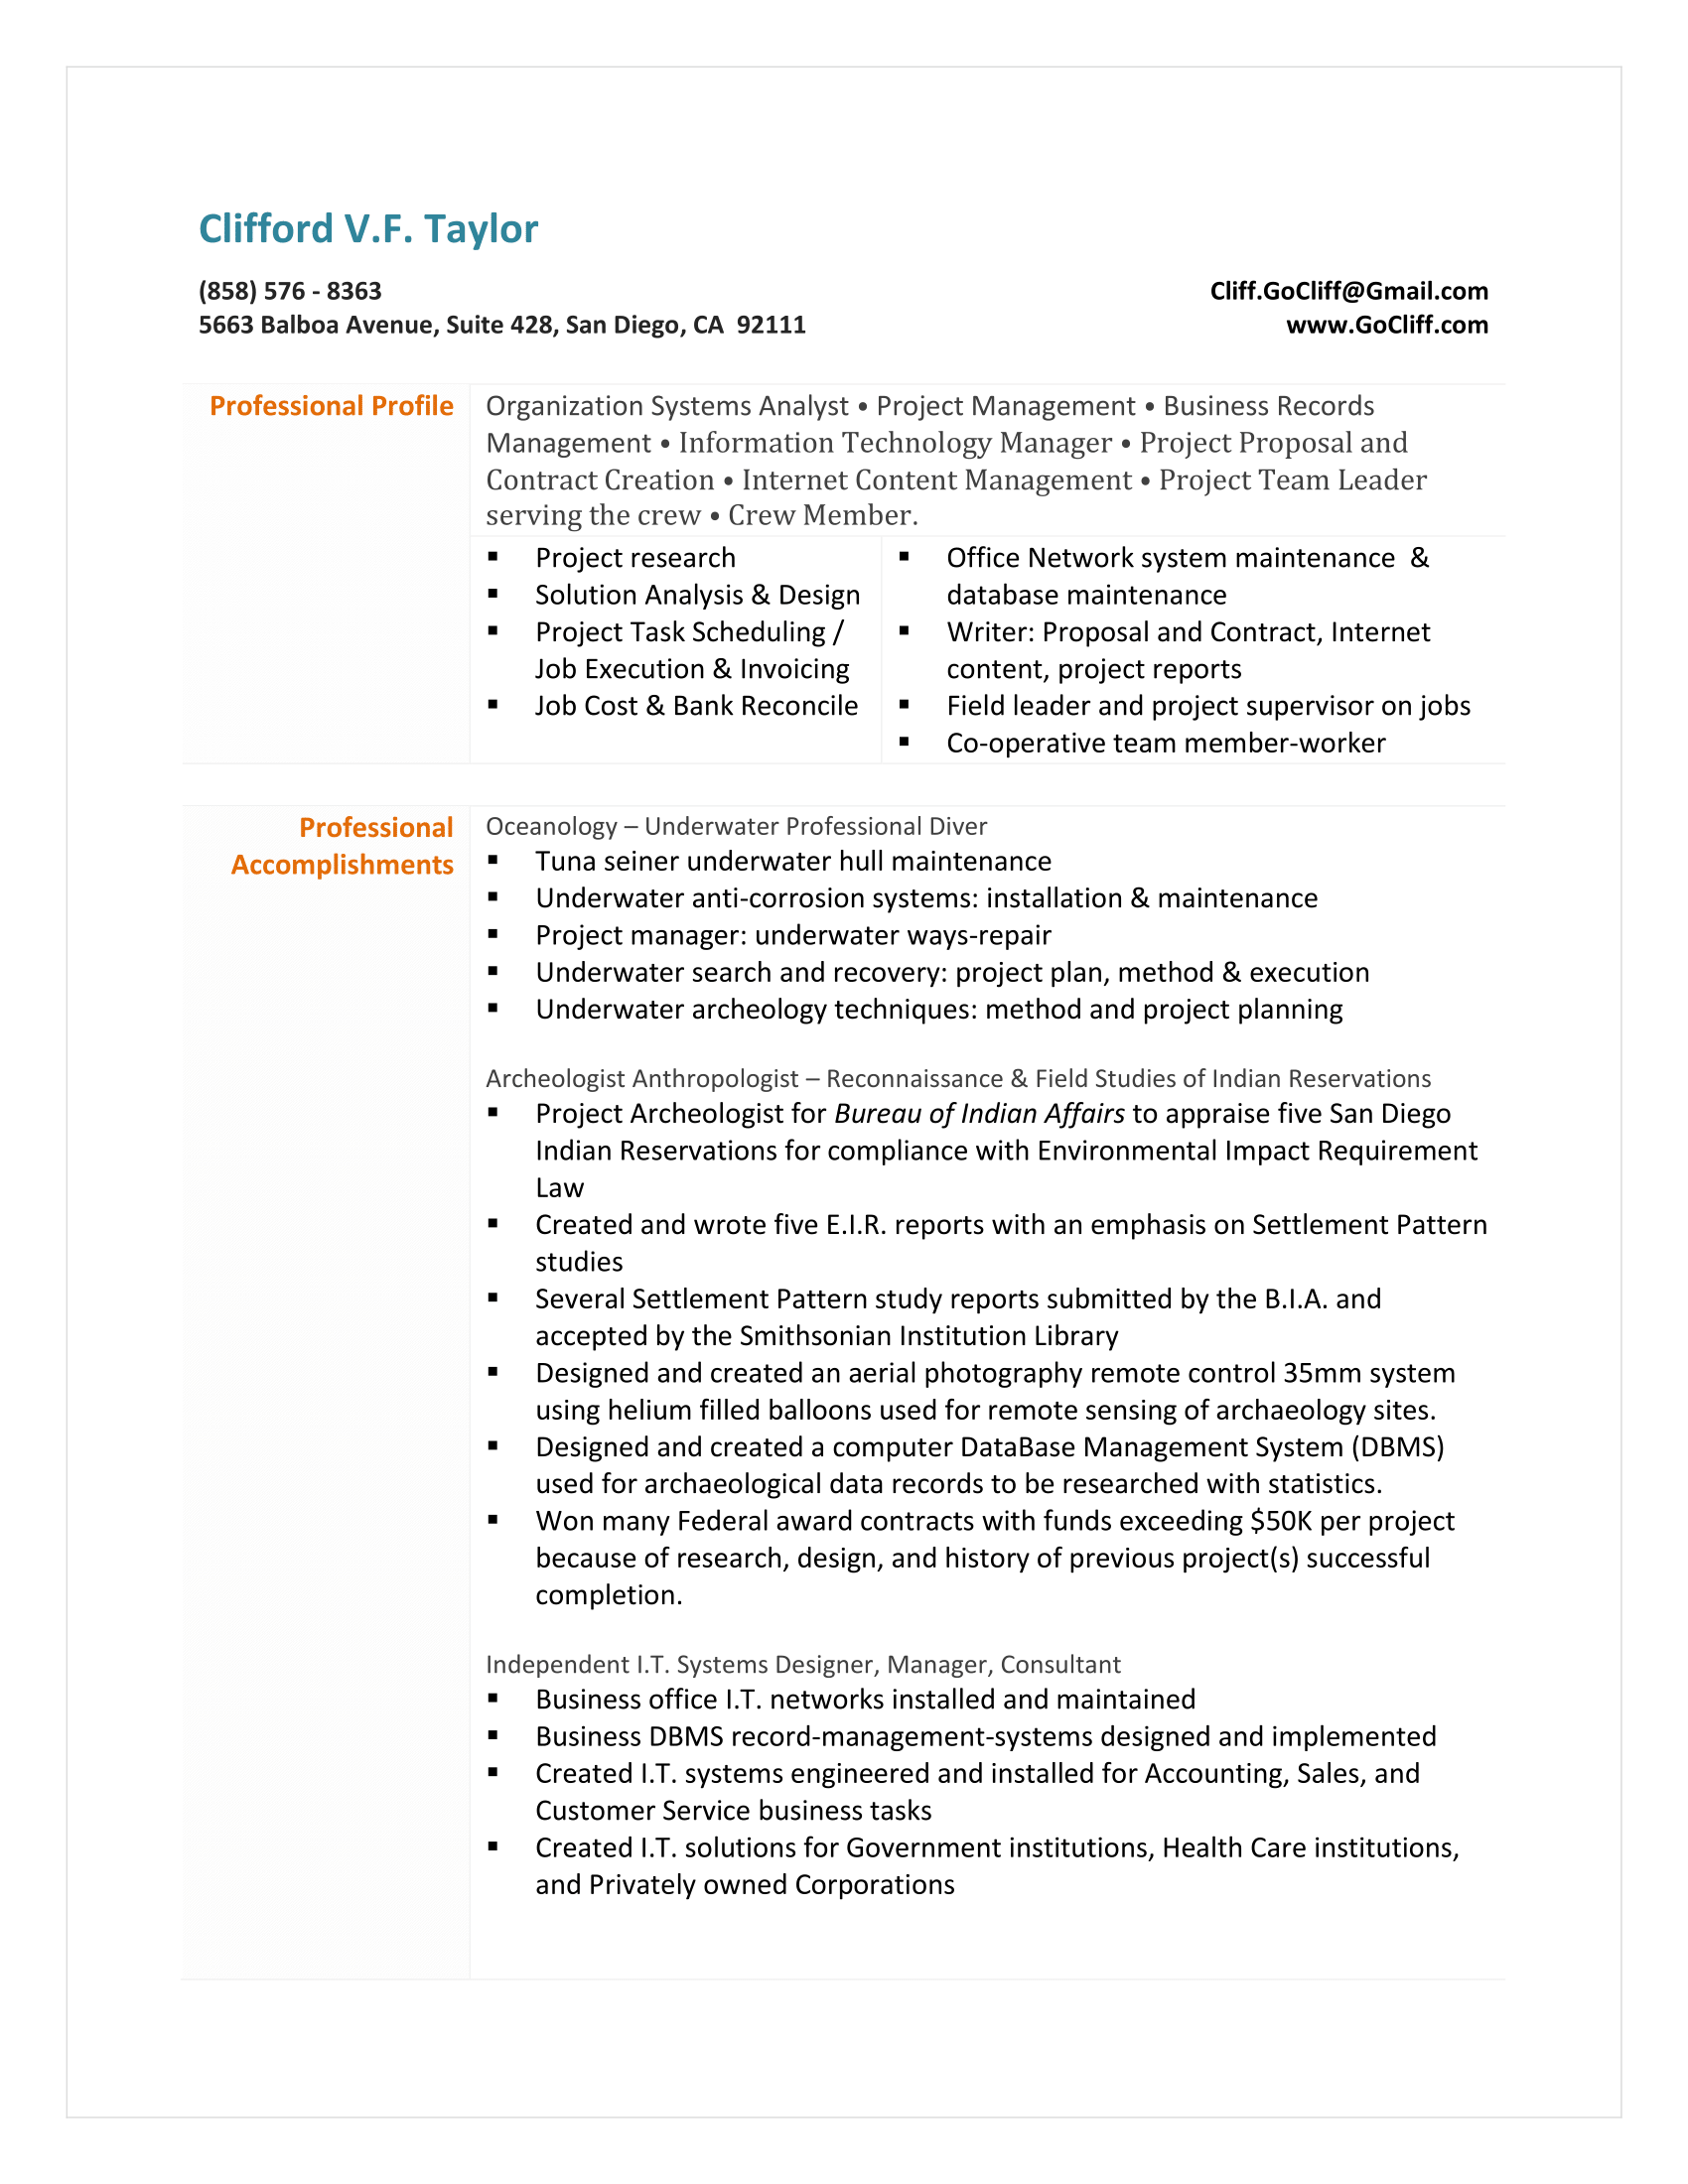 2015 Clifford Resume All History 1  Music Business Resume